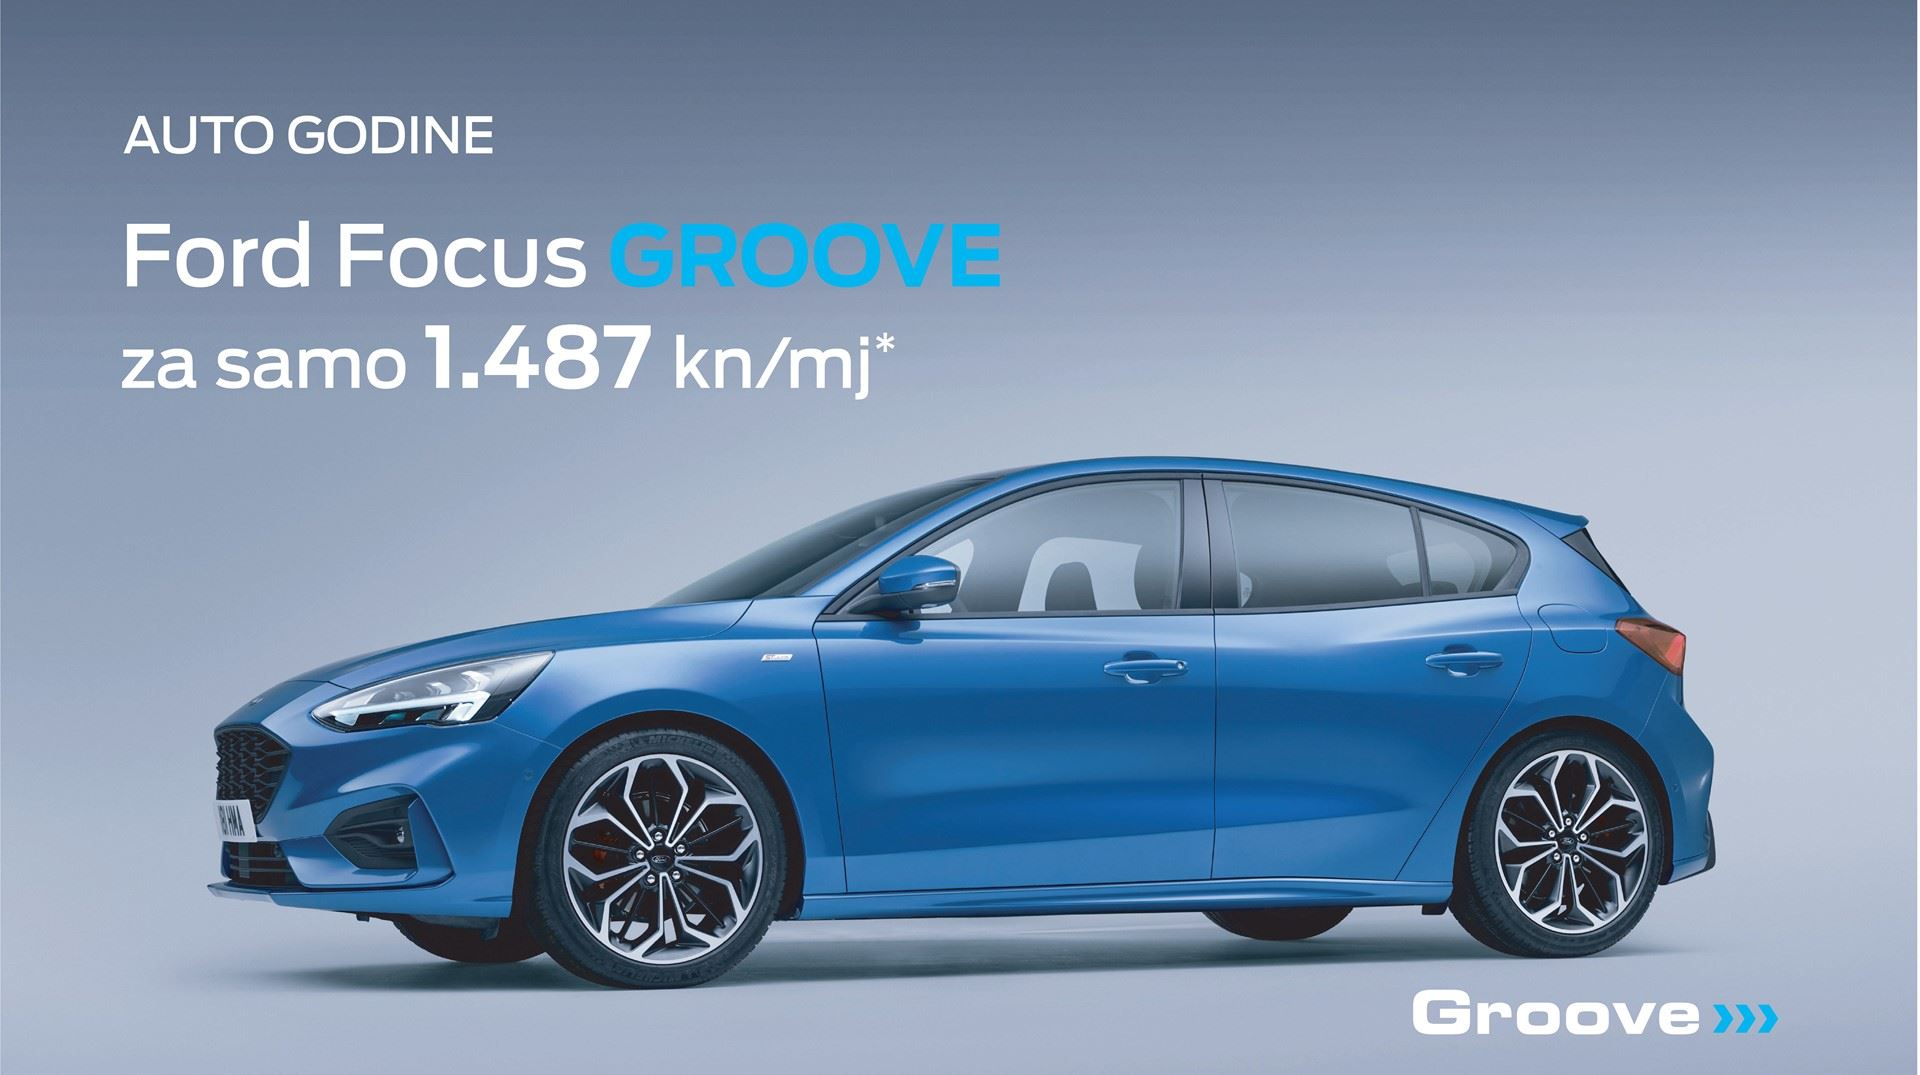 Ford Focus Groove edition